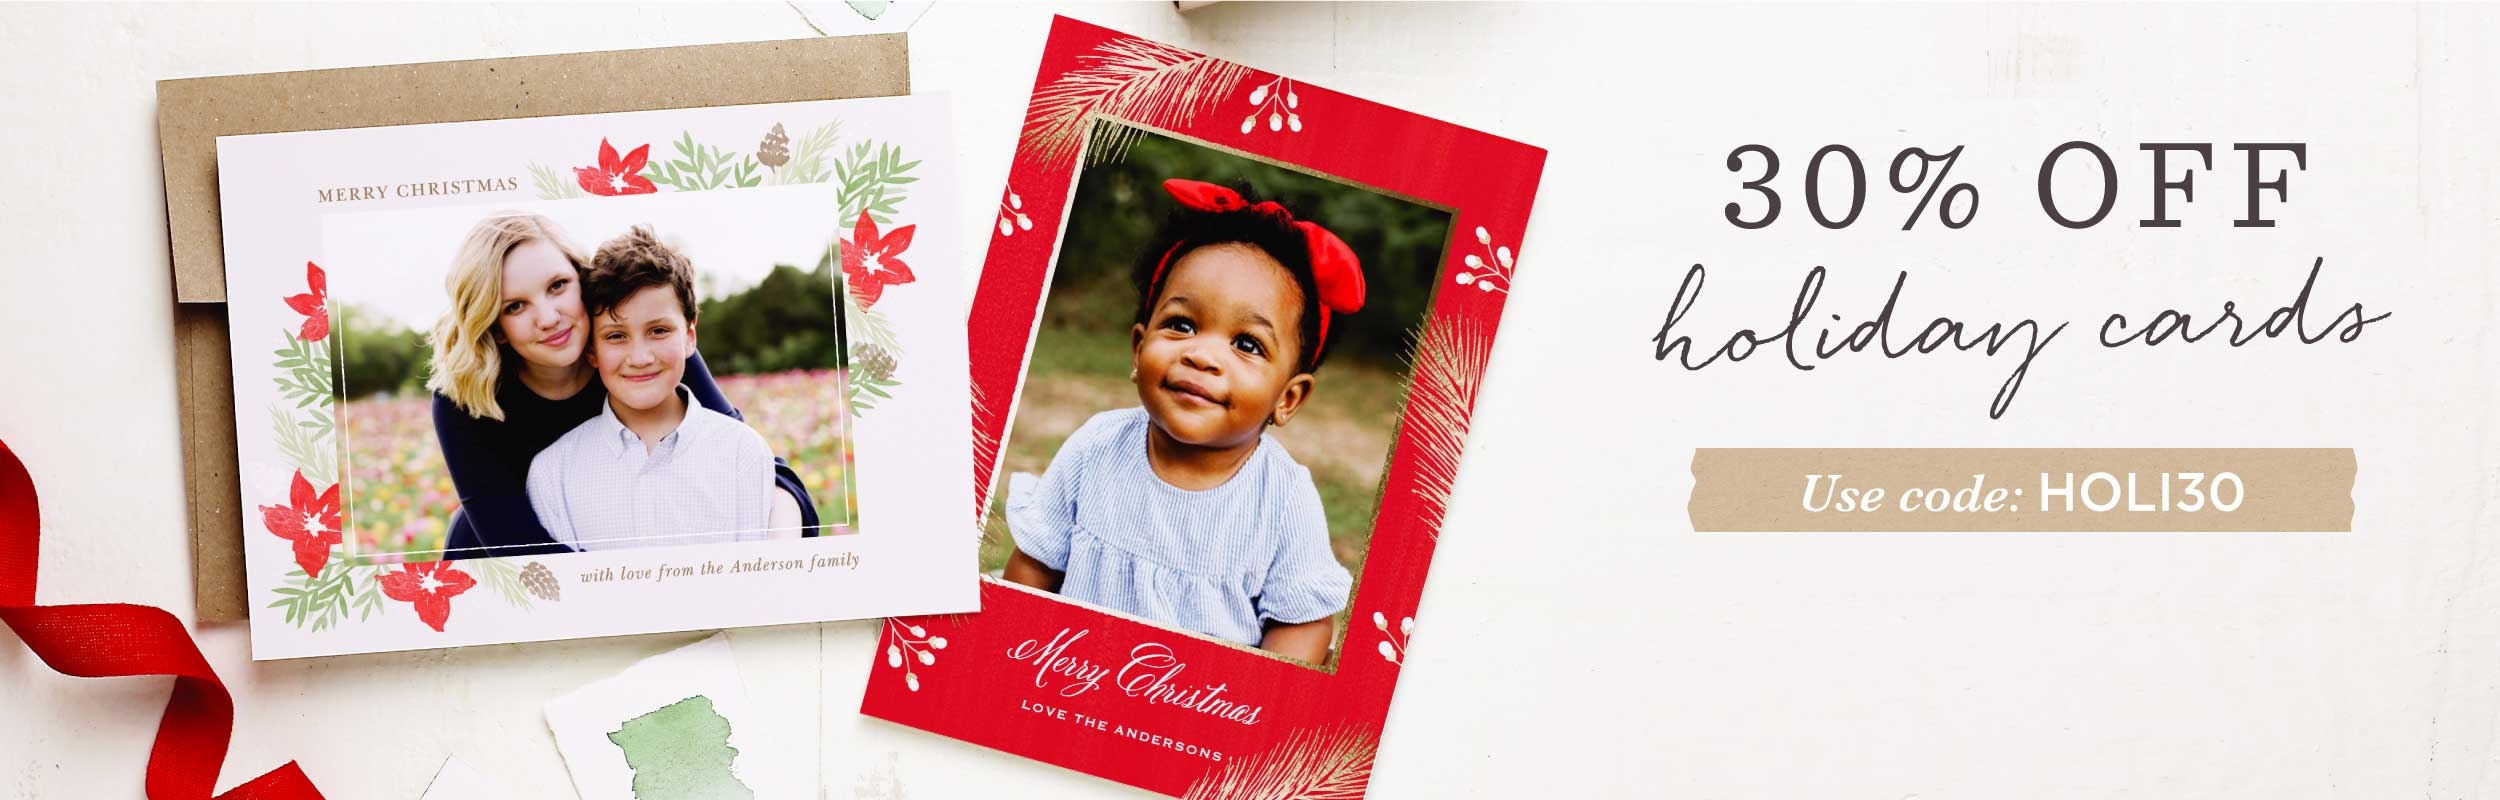 Holiday cards 30 off super cute designs basic invite holiday kristyandbryce Images